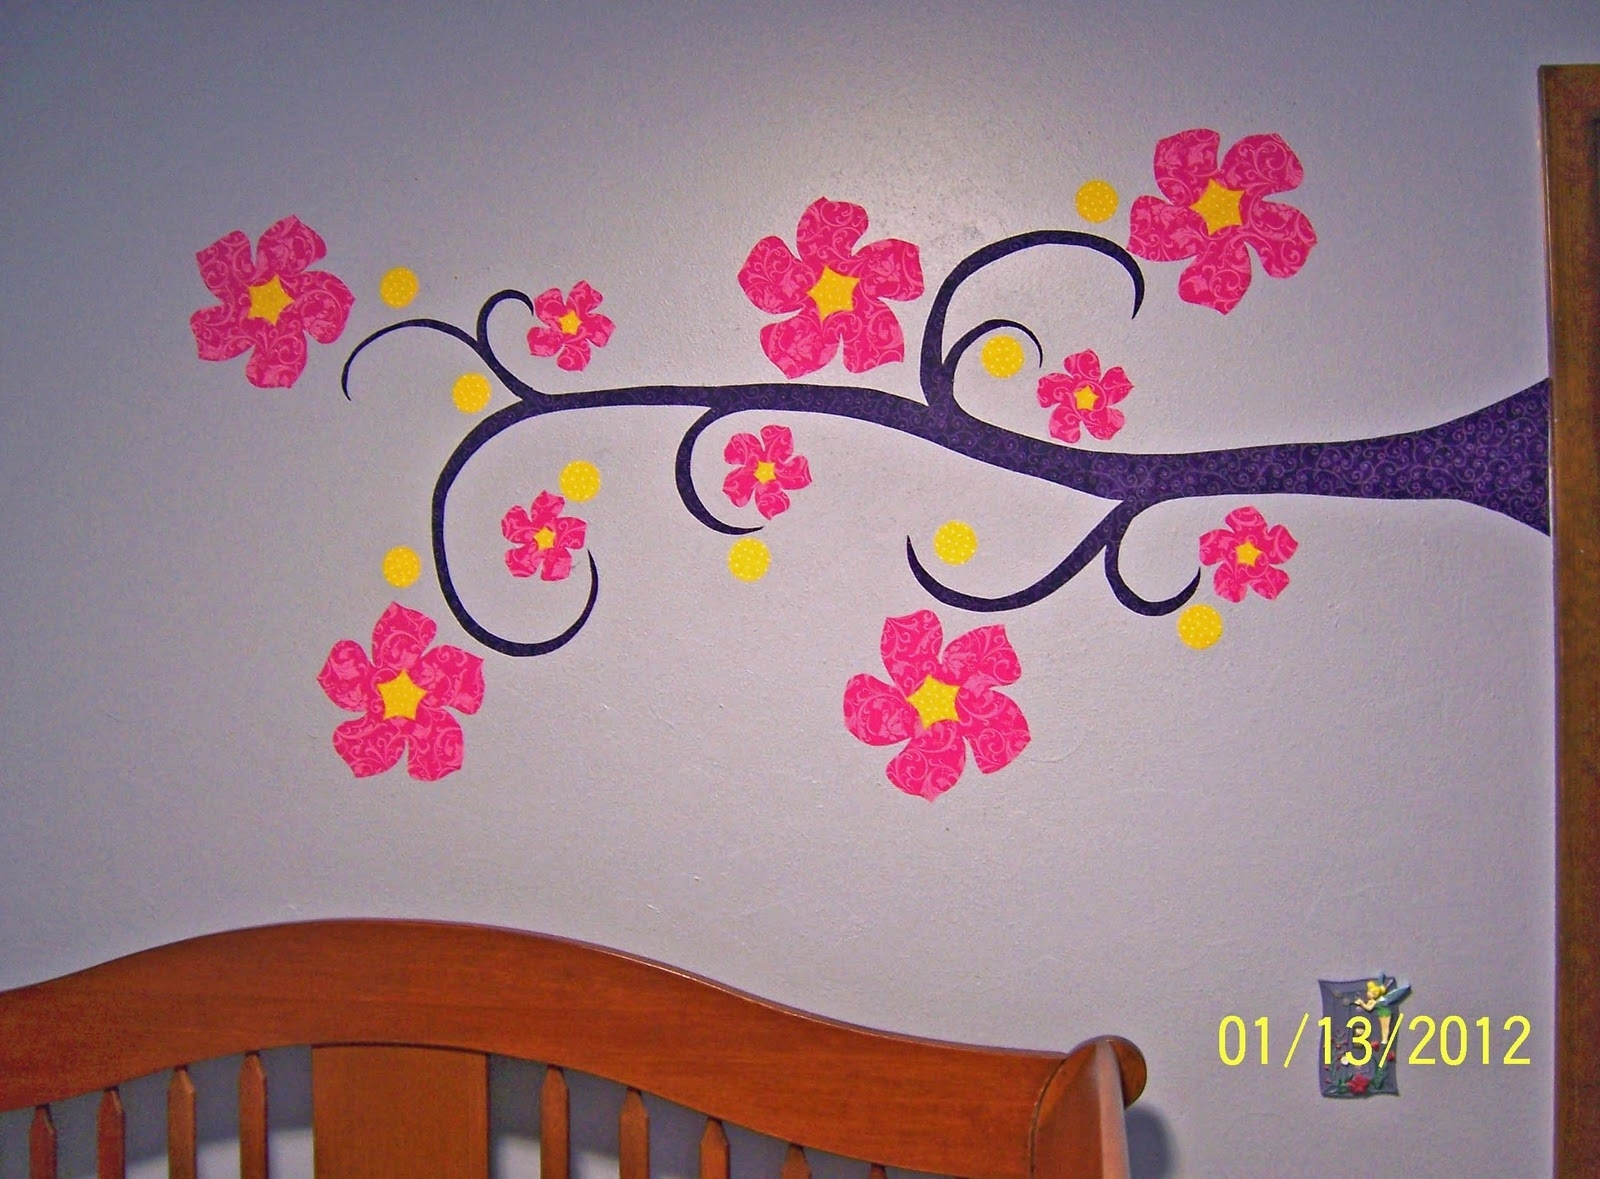 Whimsy Ma Blog: Fabric Wall Appliques A Tutorial Throughout 2018 Fabric Applique Wall Art (View 10 of 15)